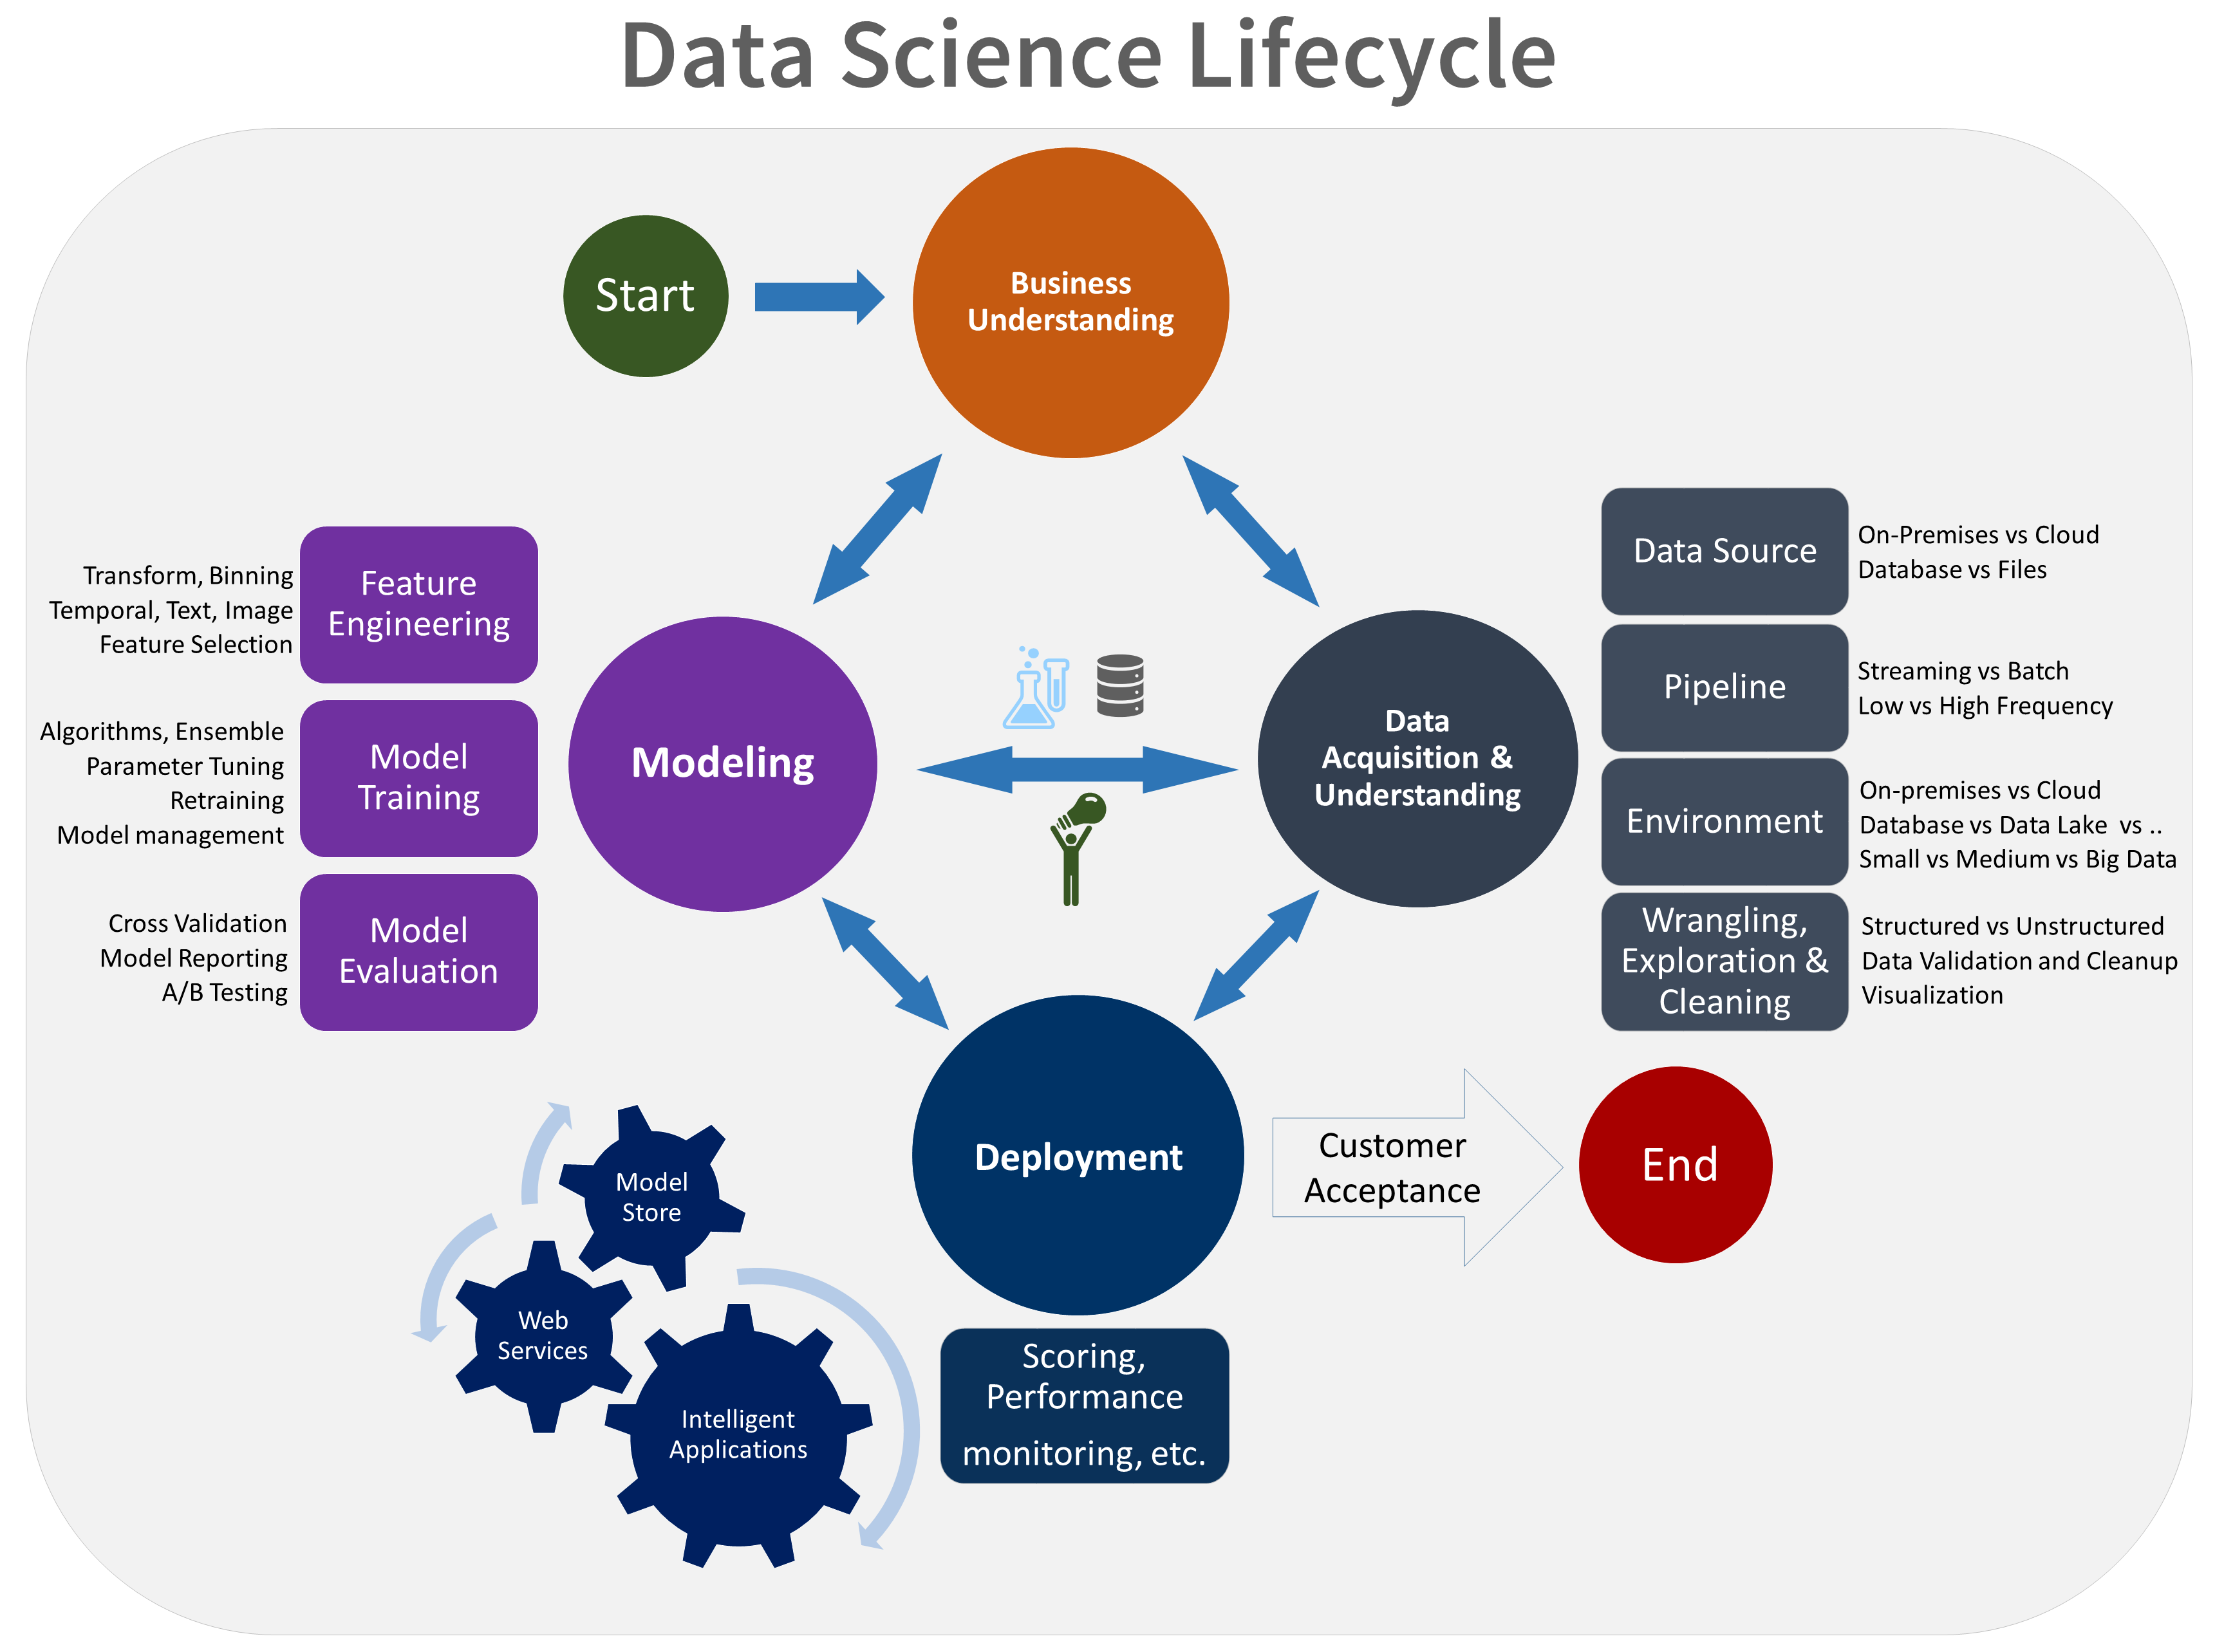 TDSP lifecycle | Machine Learning Stuff in 2019 | Data